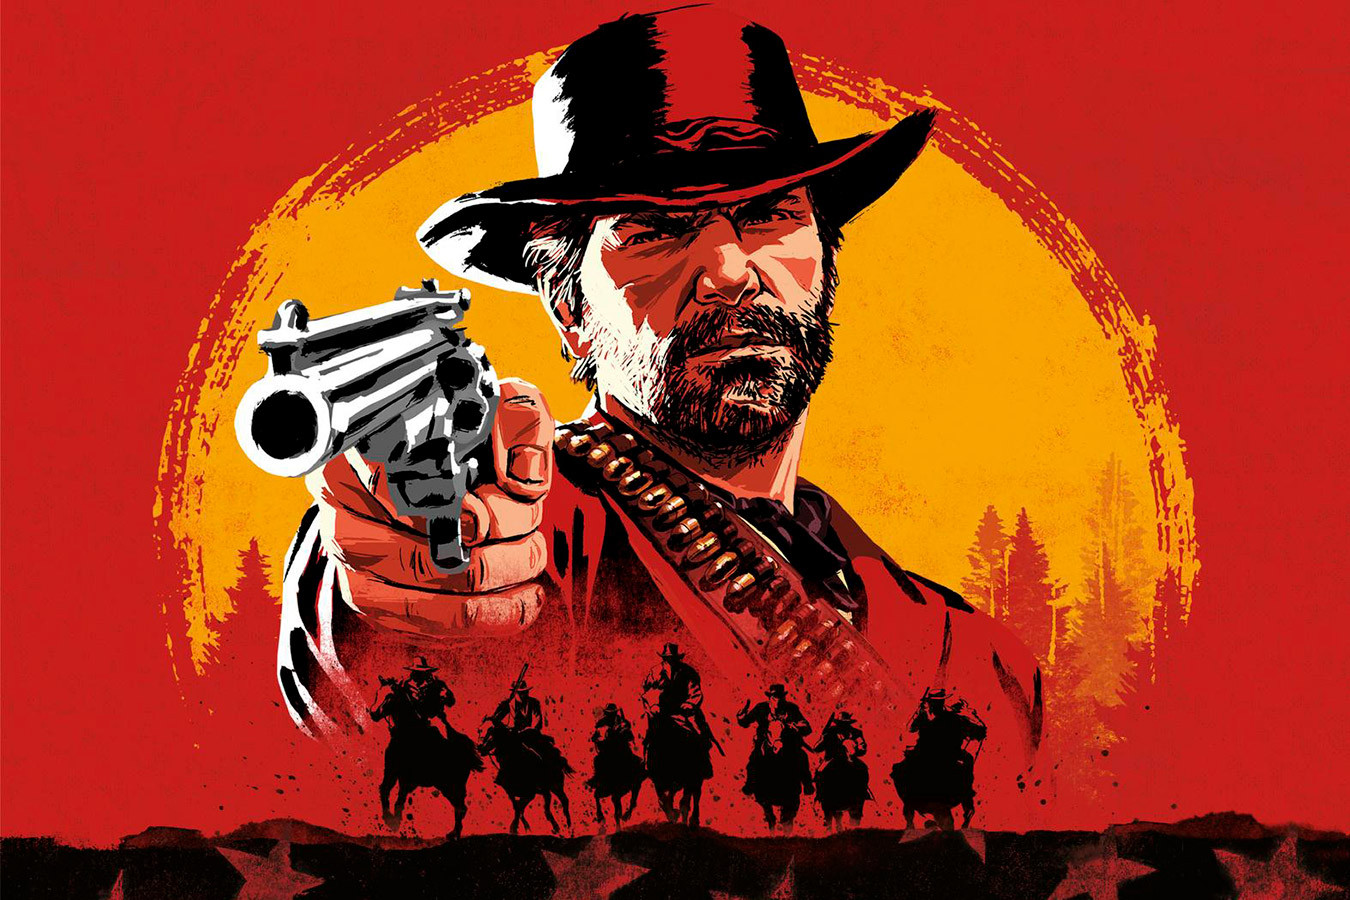 Названы победители премии The Steam Awards 2020. Игрой года стала Red Dead Redemption 2